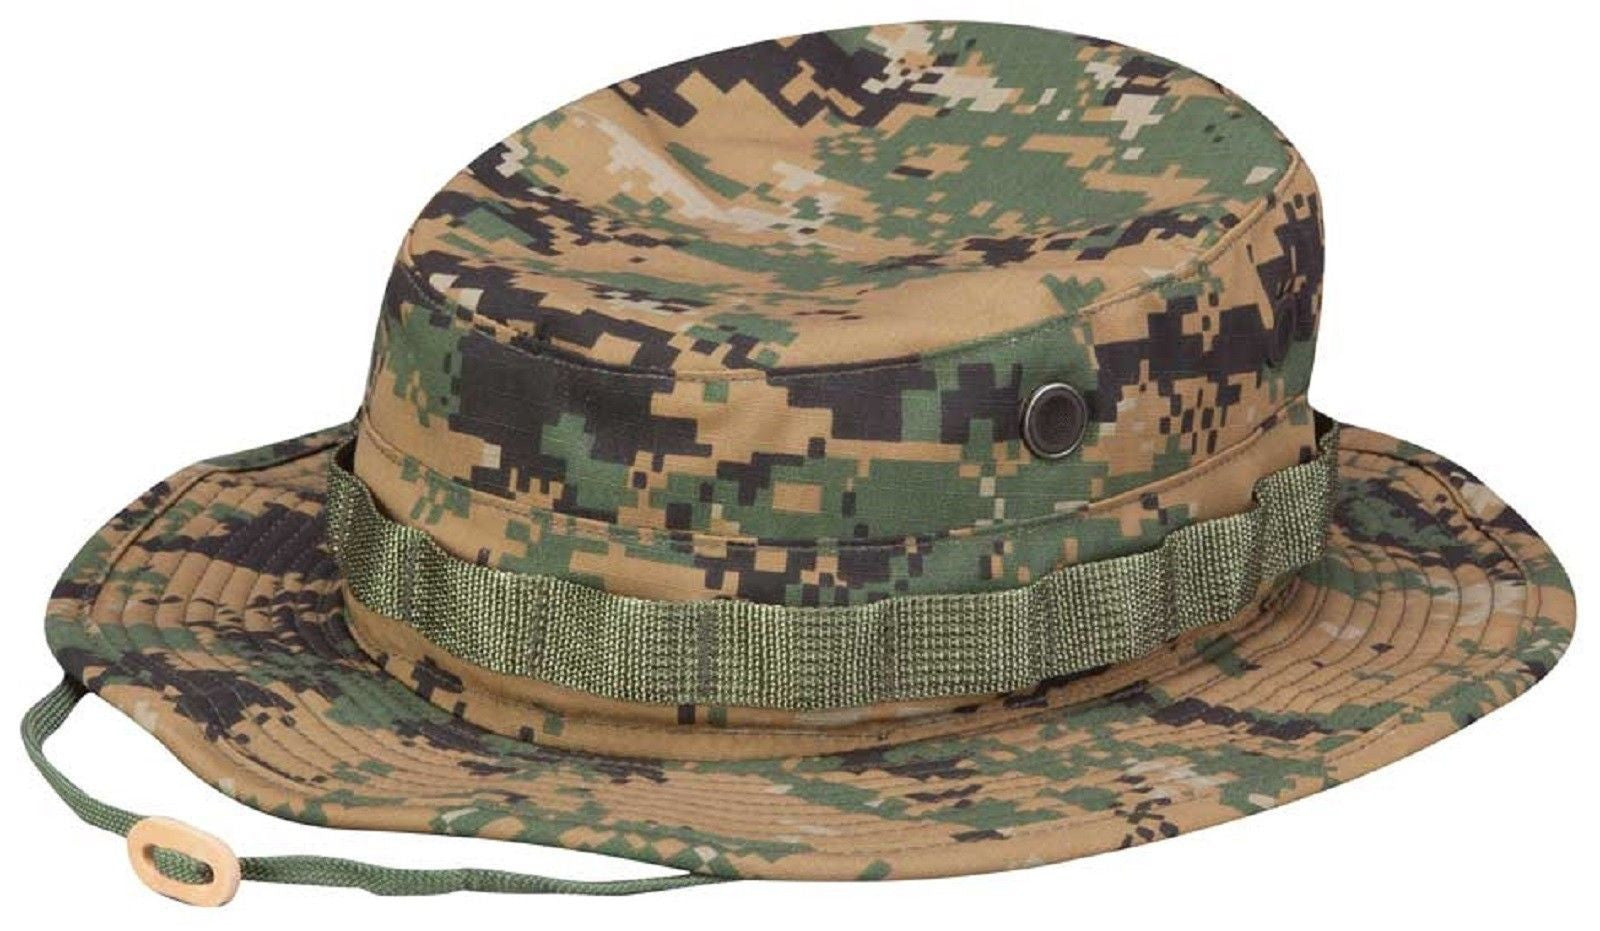 cb90906081c36 Propper® Mil-Spec Tactical Boonie Hat - Bucket Hat Jungle Cap ...